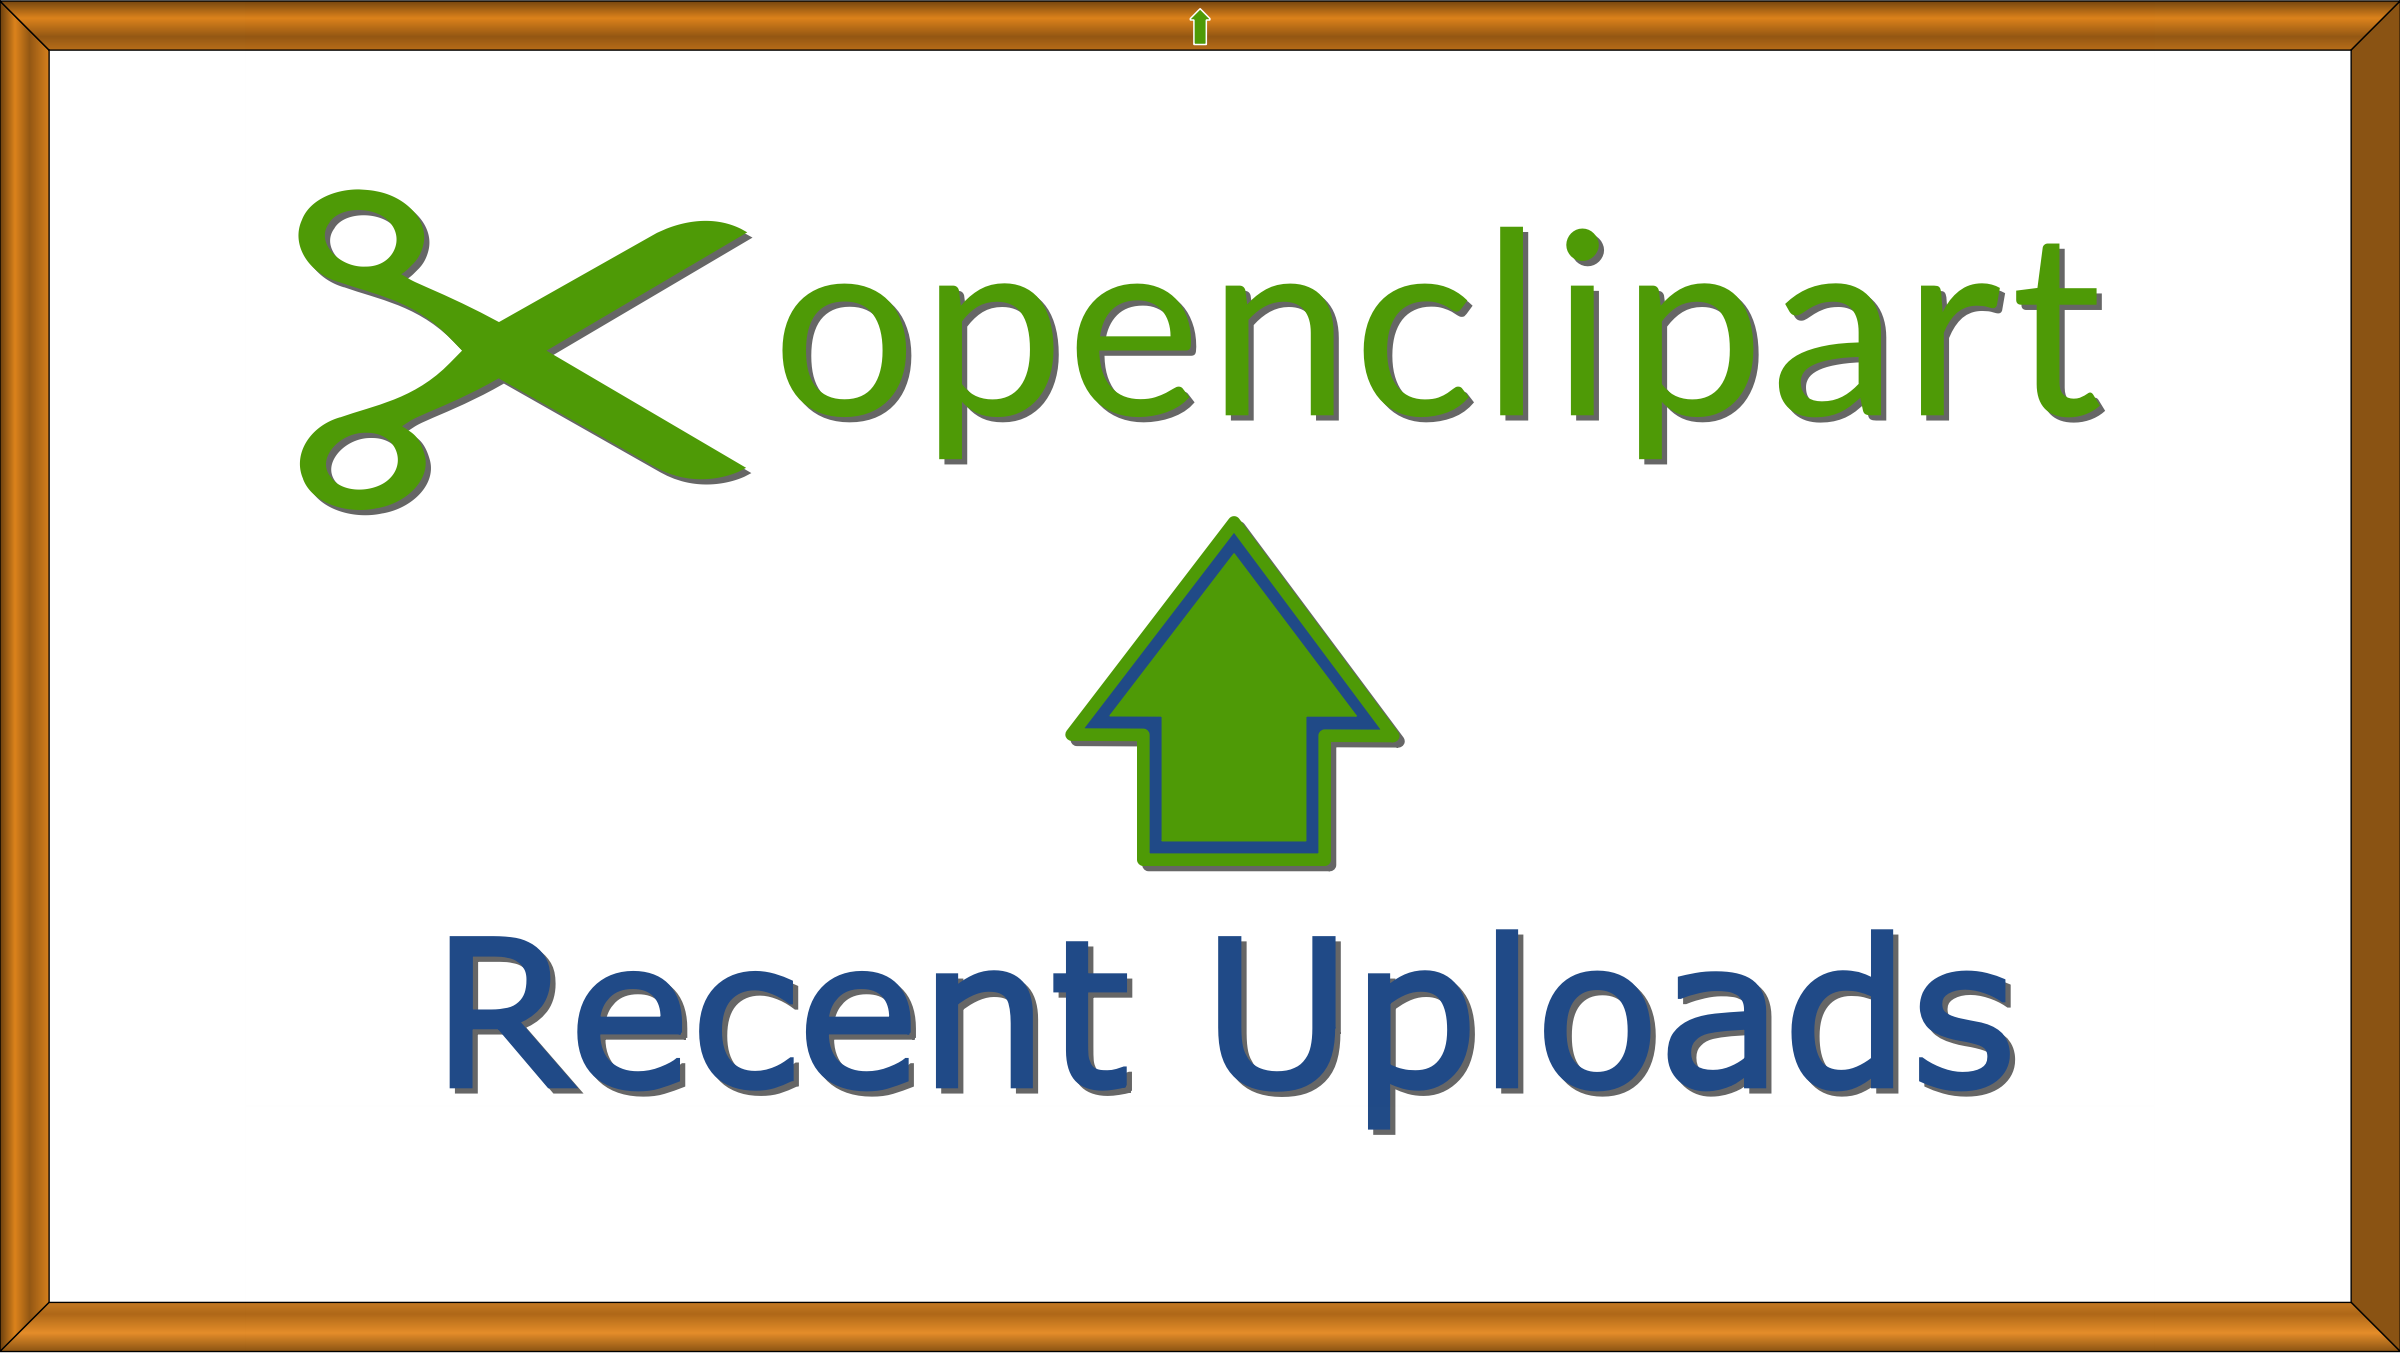 Openclipart Recent Uploads by JayNick